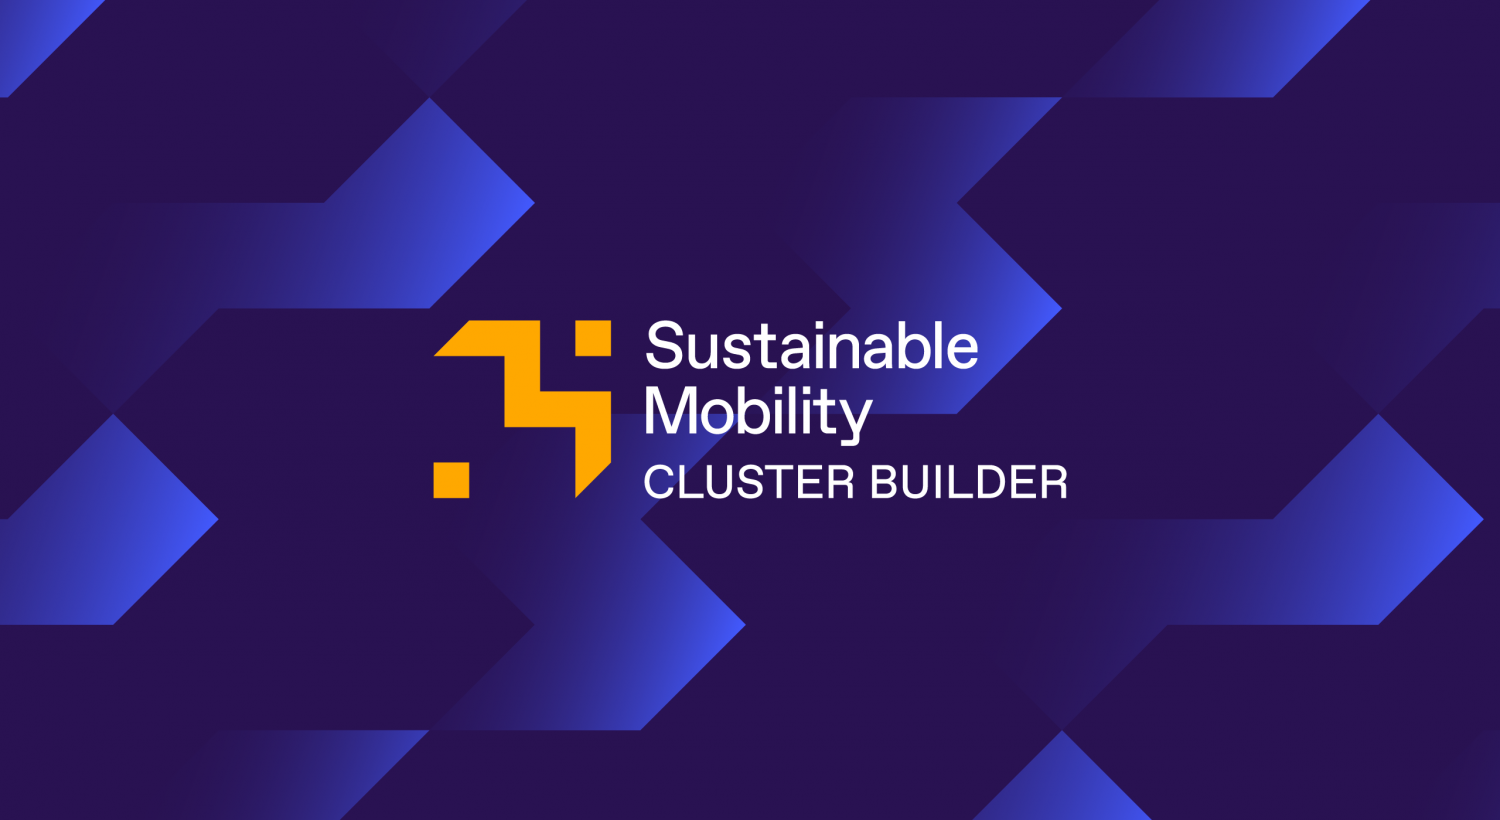 Mobility-cluster-hero-image